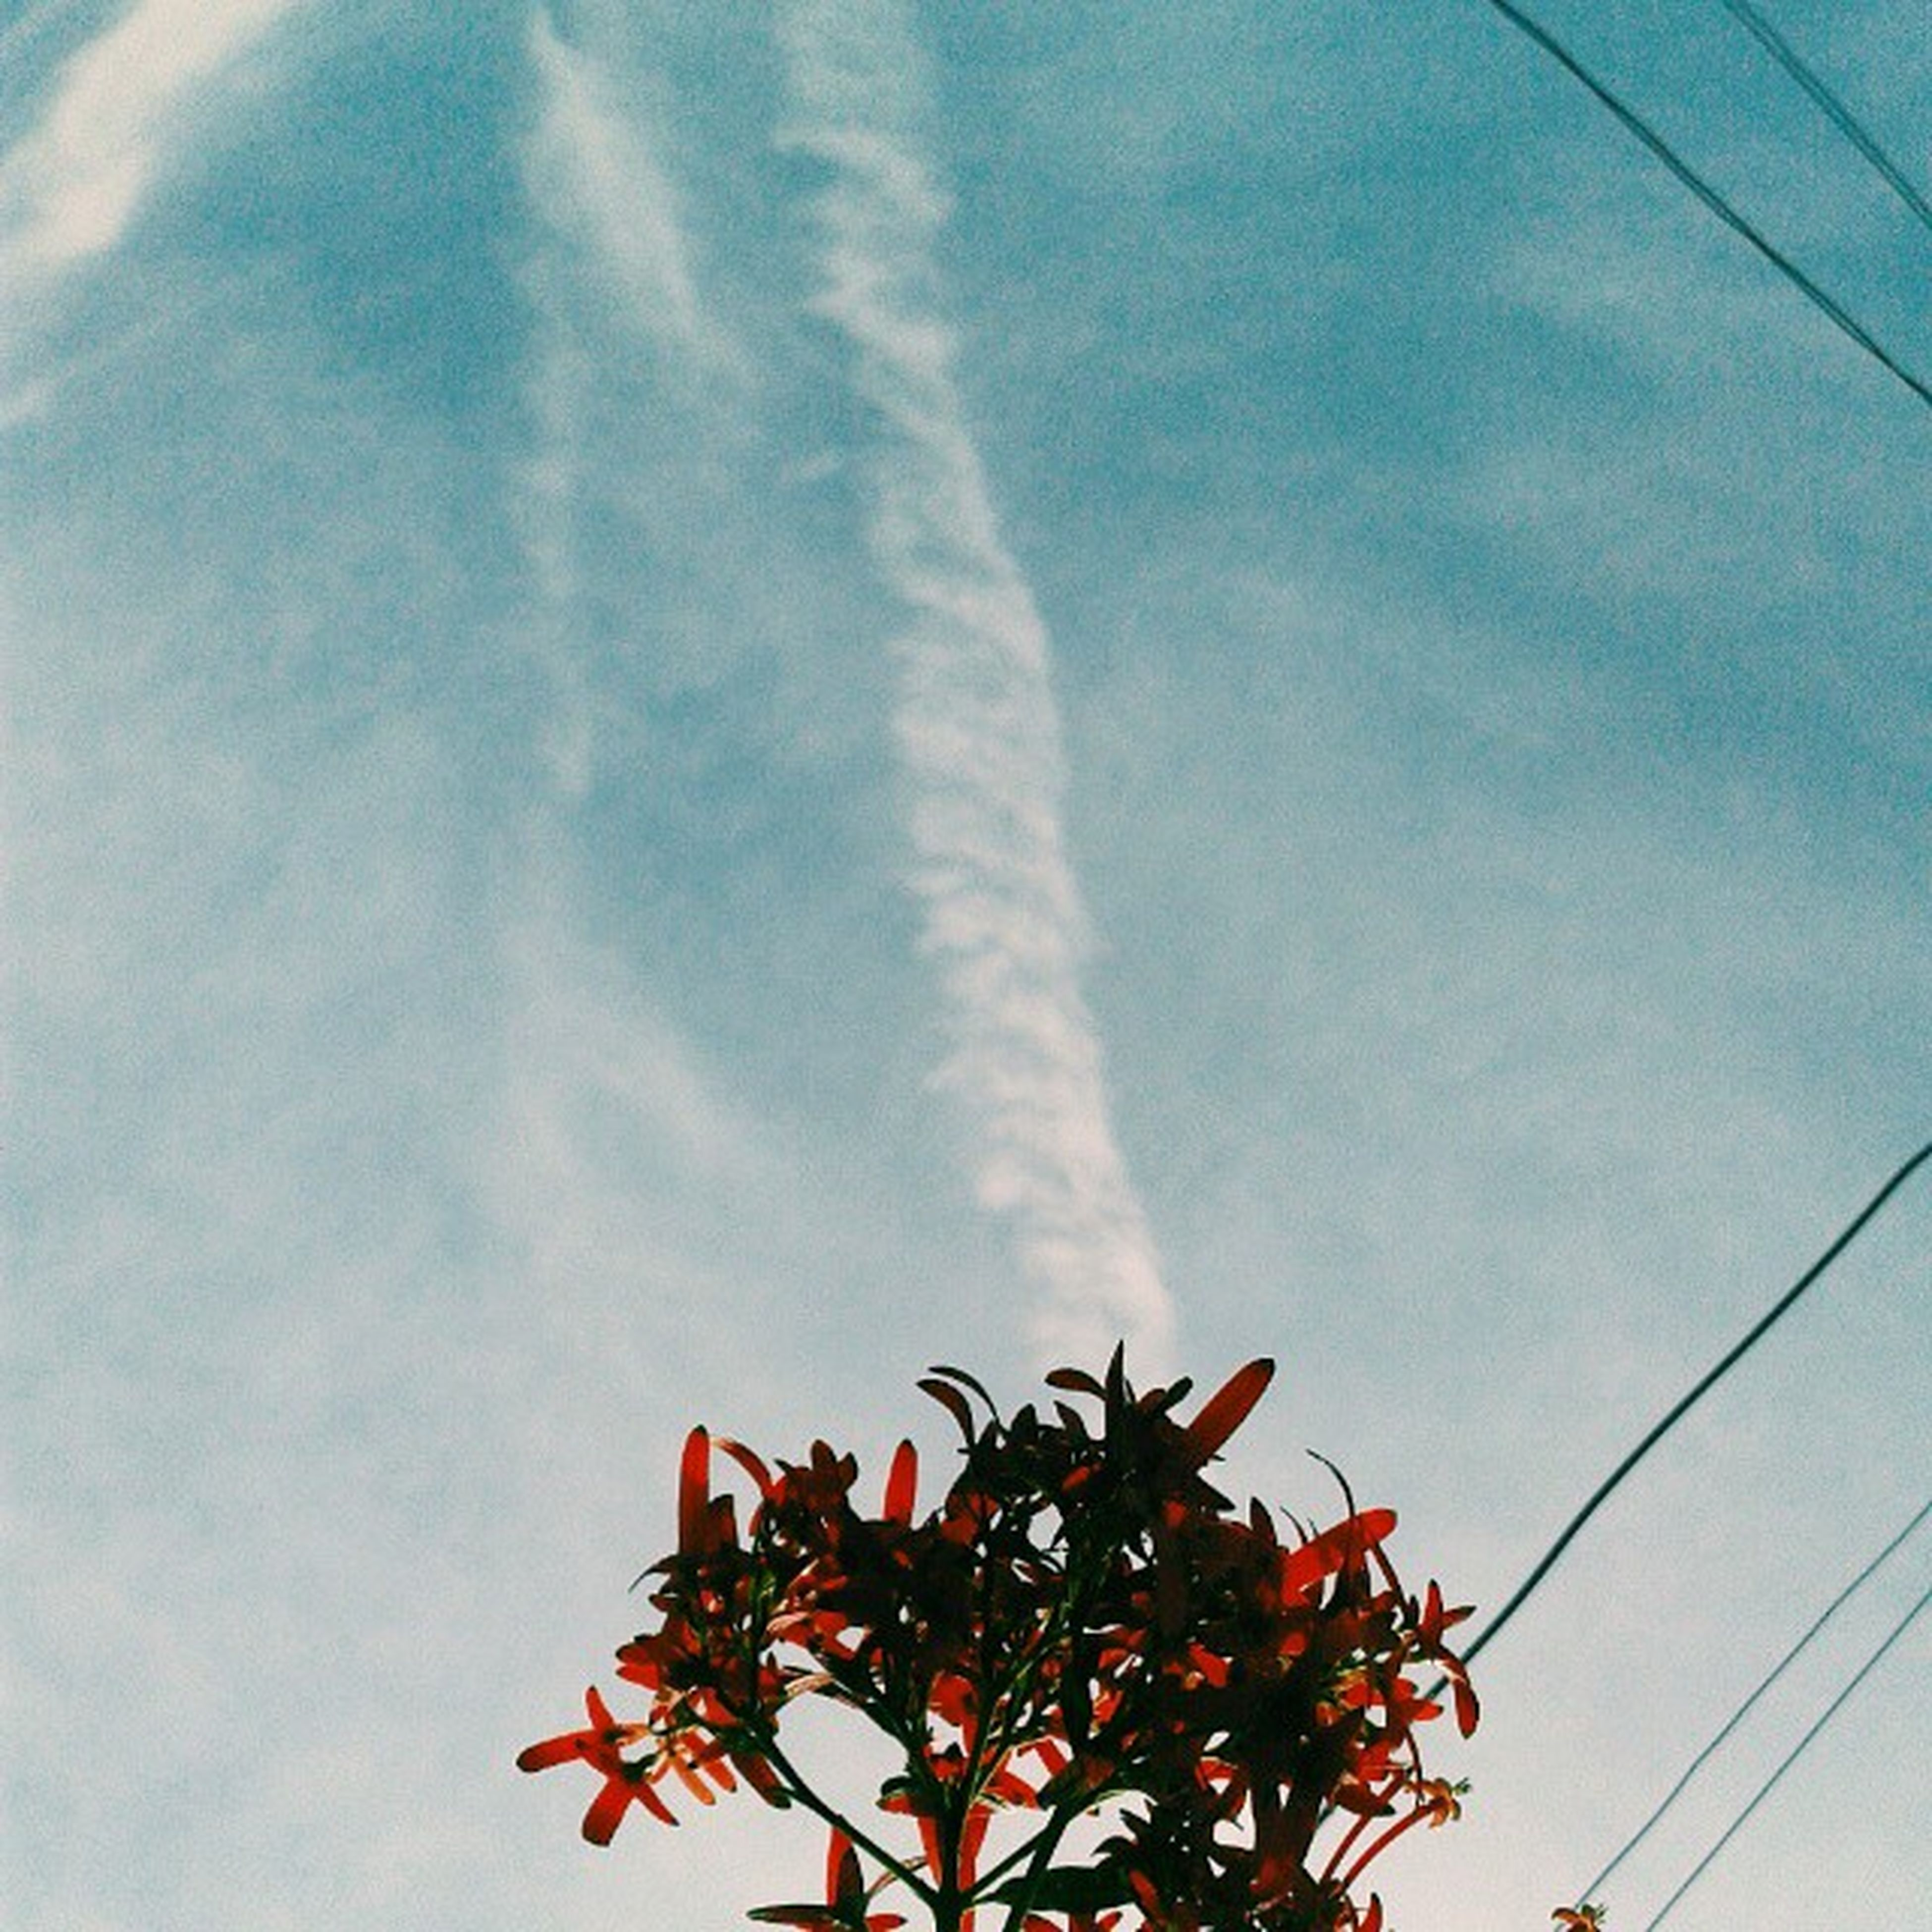 low angle view, sky, growth, cloud - sky, nature, beauty in nature, red, cloud, leaf, plant, day, freshness, outdoors, no people, blue, cloudy, tree, tranquility, flower, close-up